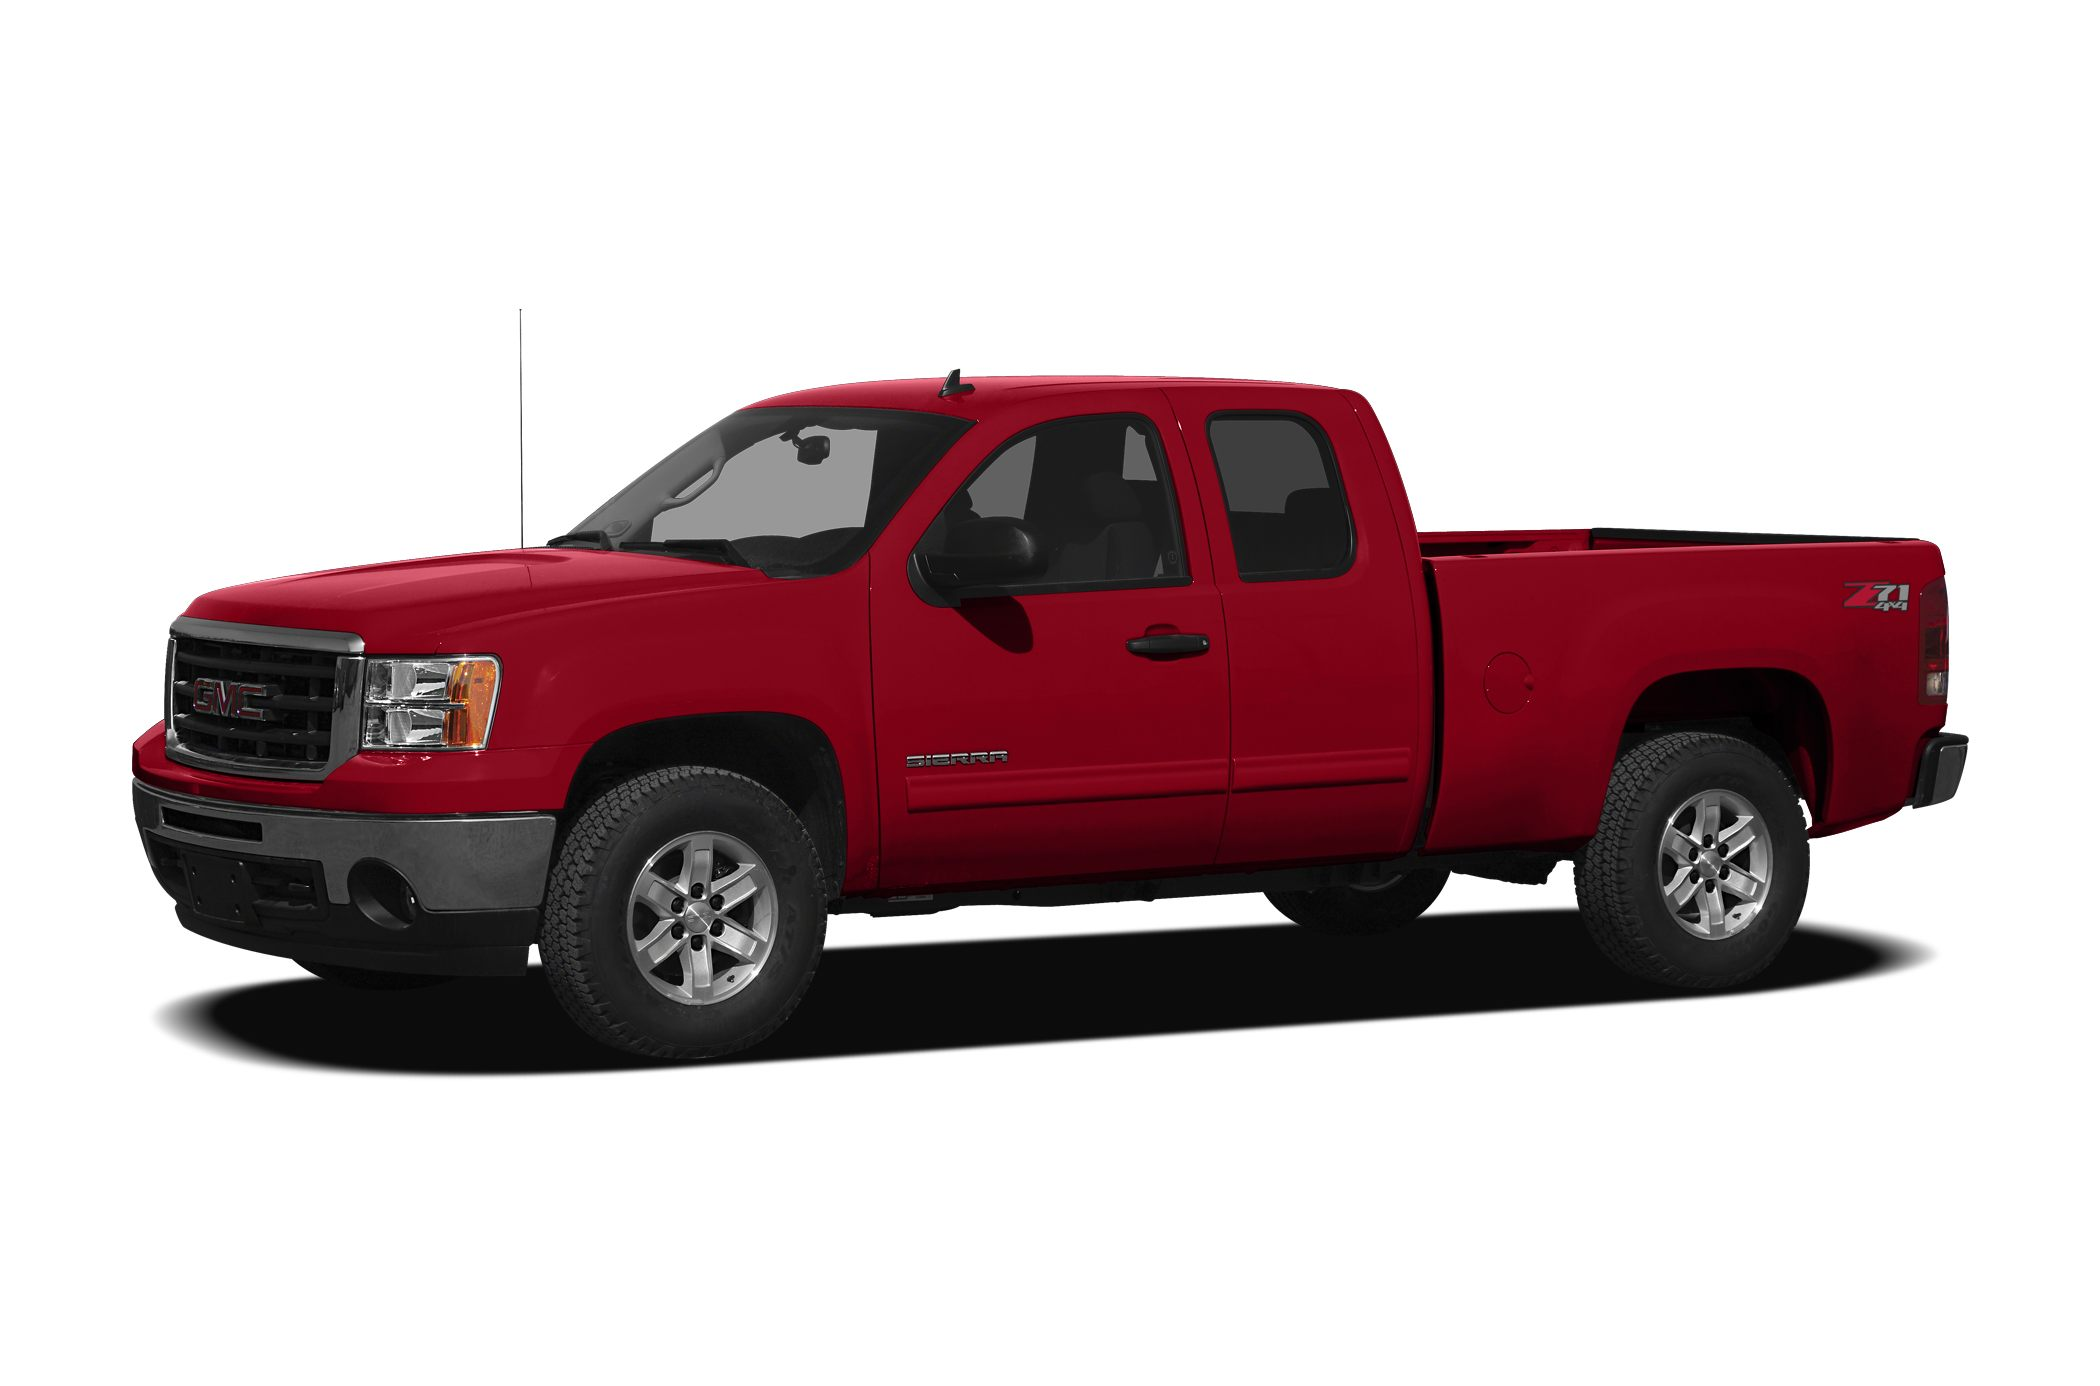 2012 GMC Sierra 1500 SLT Crew Cab Pickup for sale in Little Rock for $36,879 with 38,644 miles.